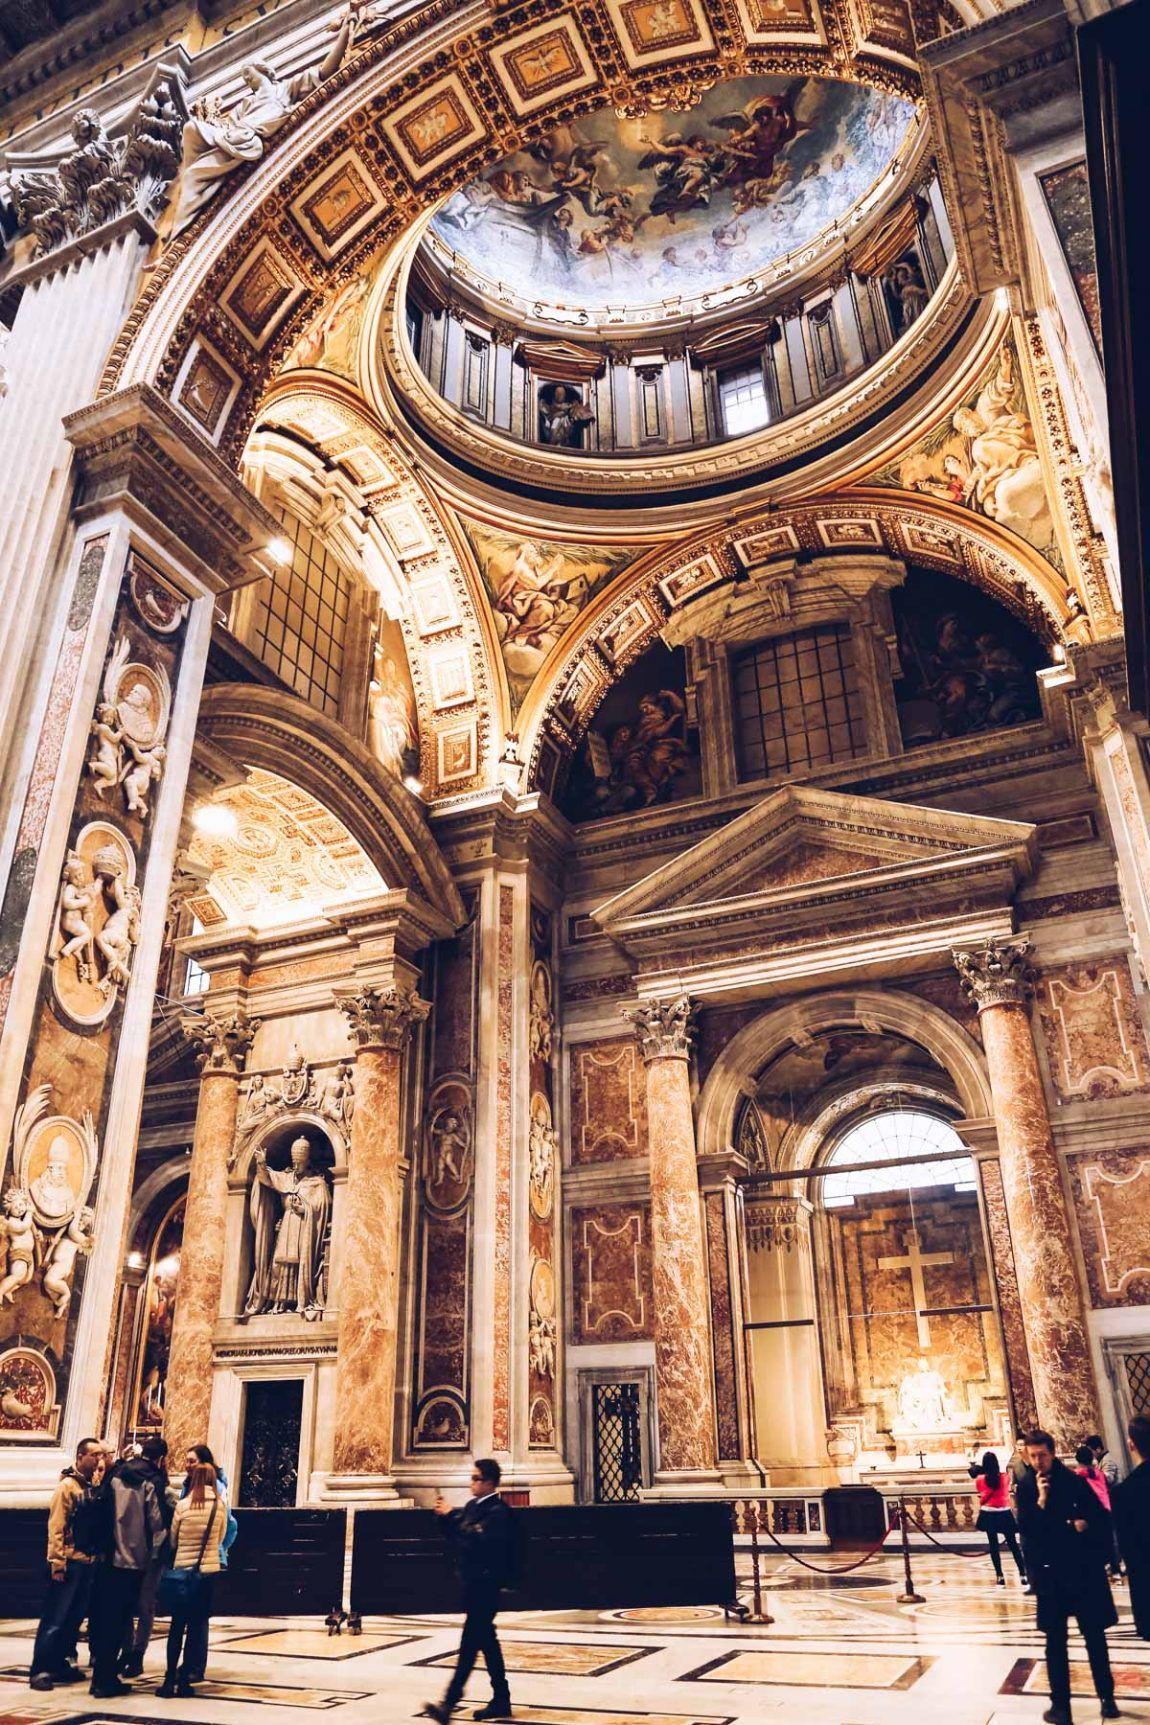 5 Things You Must Do At St Peter's Basilica In Rome